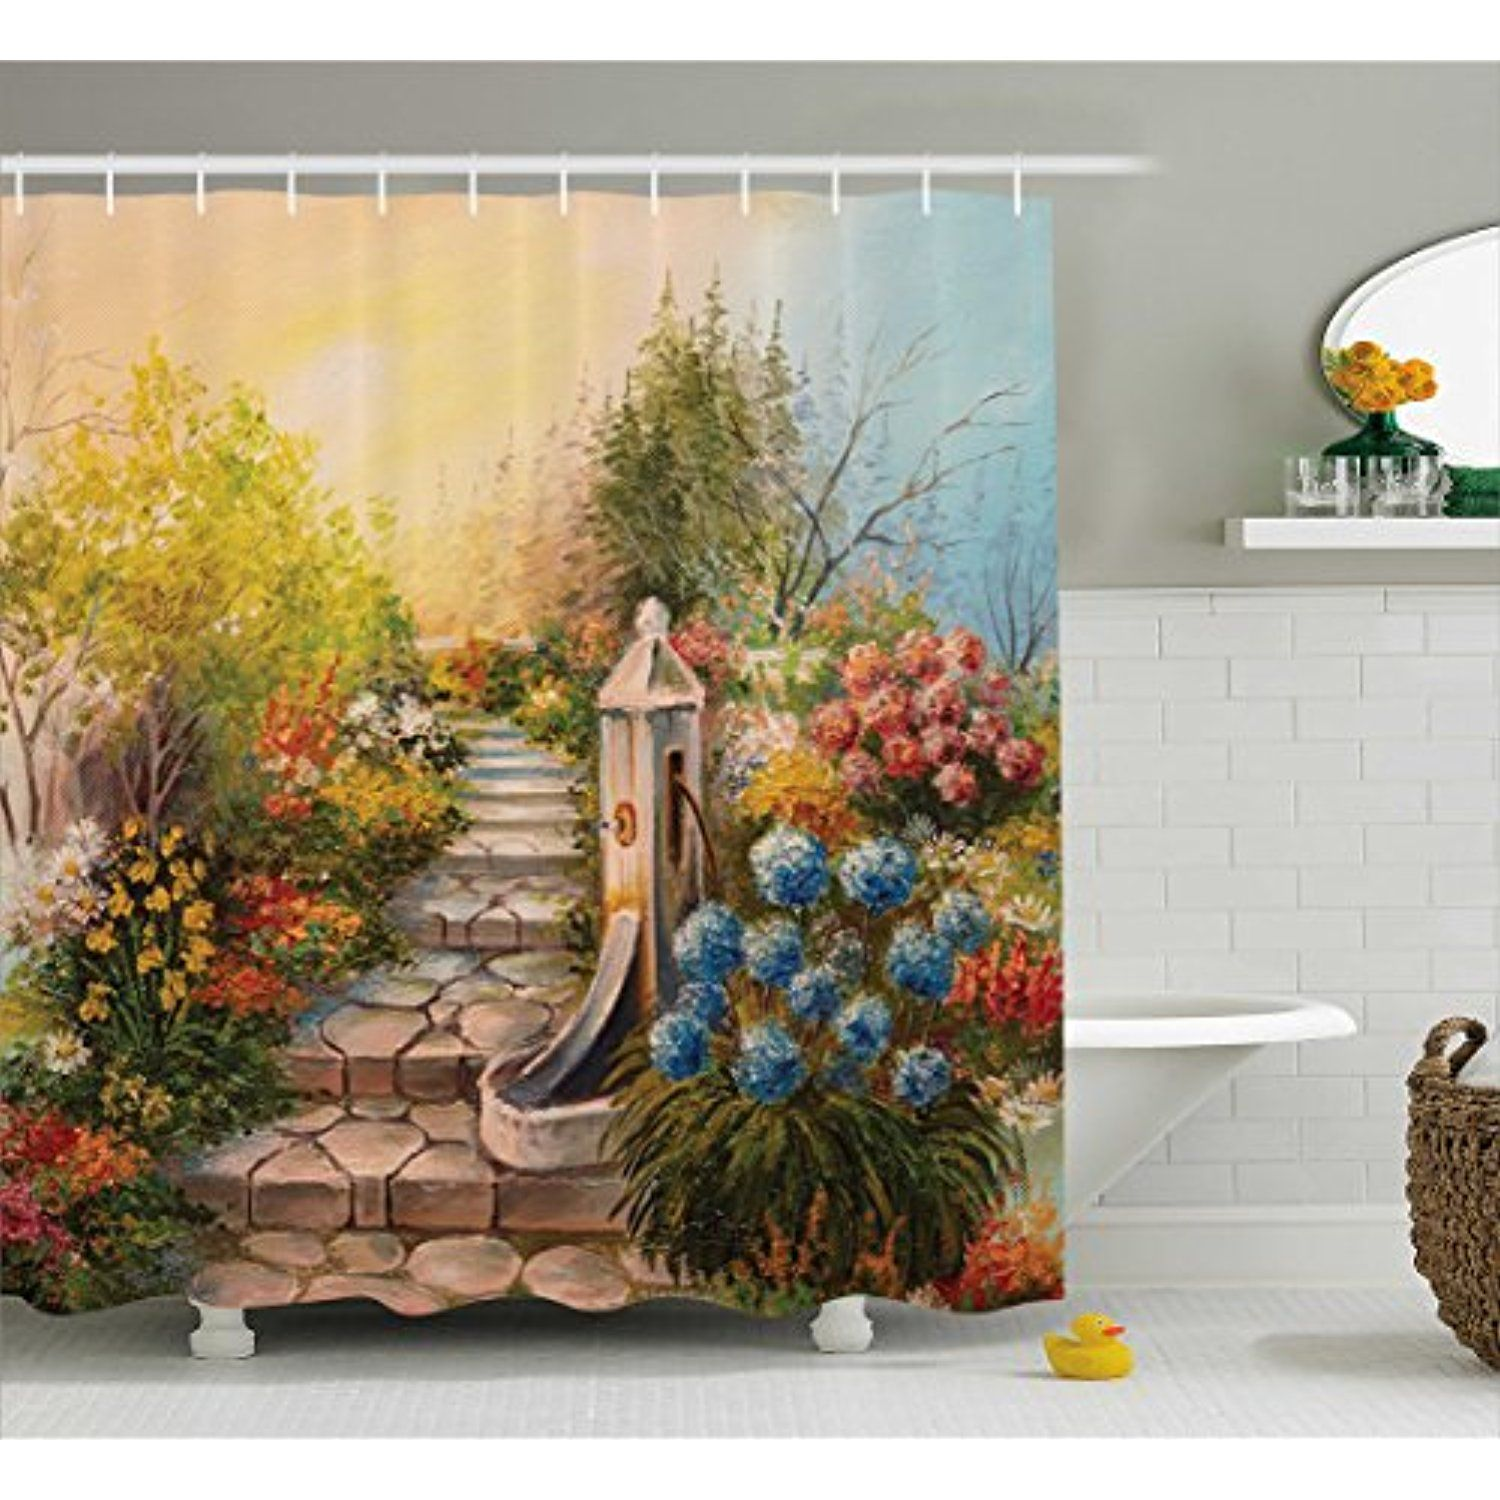 Flower Shower Curtain by Lunarable, Opium Poppy Field and Beautiful ...